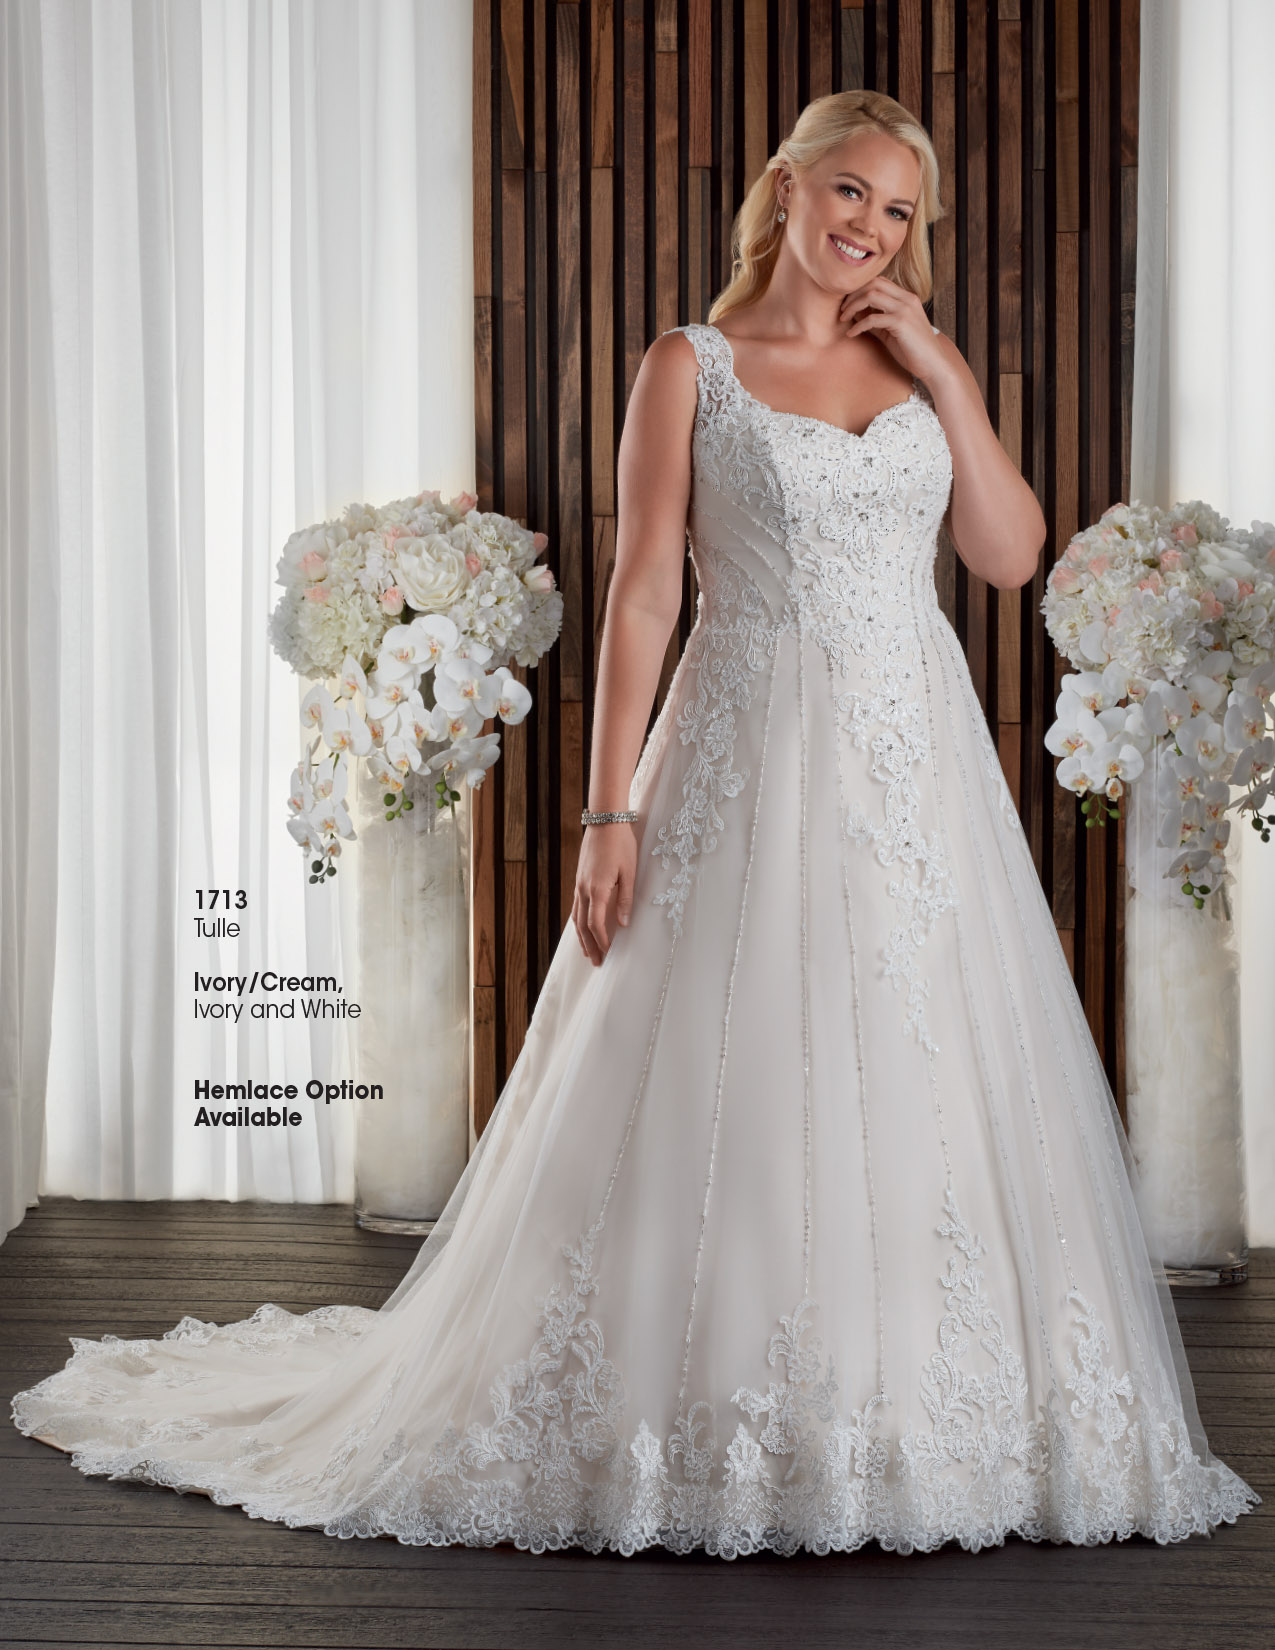 Unforgettable By Bonny Bridal Love Our Wedding